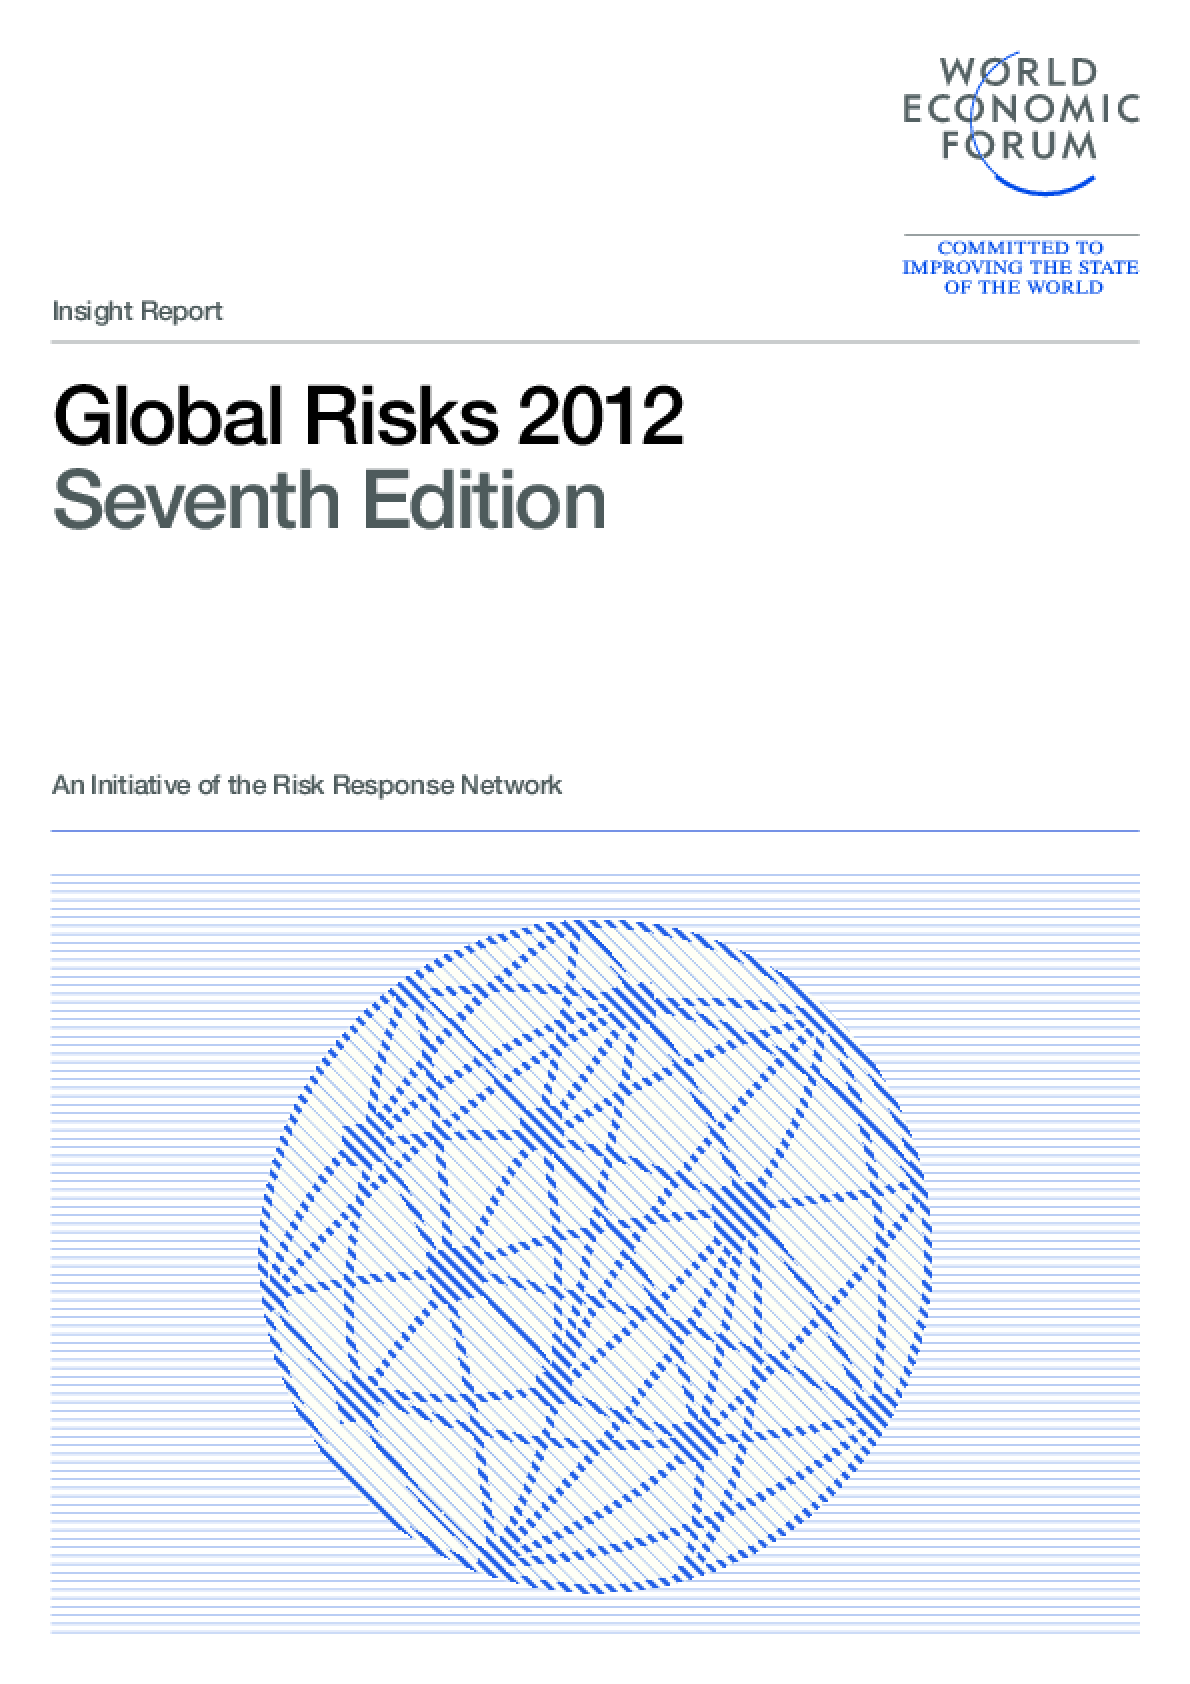 Global Risks 2012, Seventh Edition